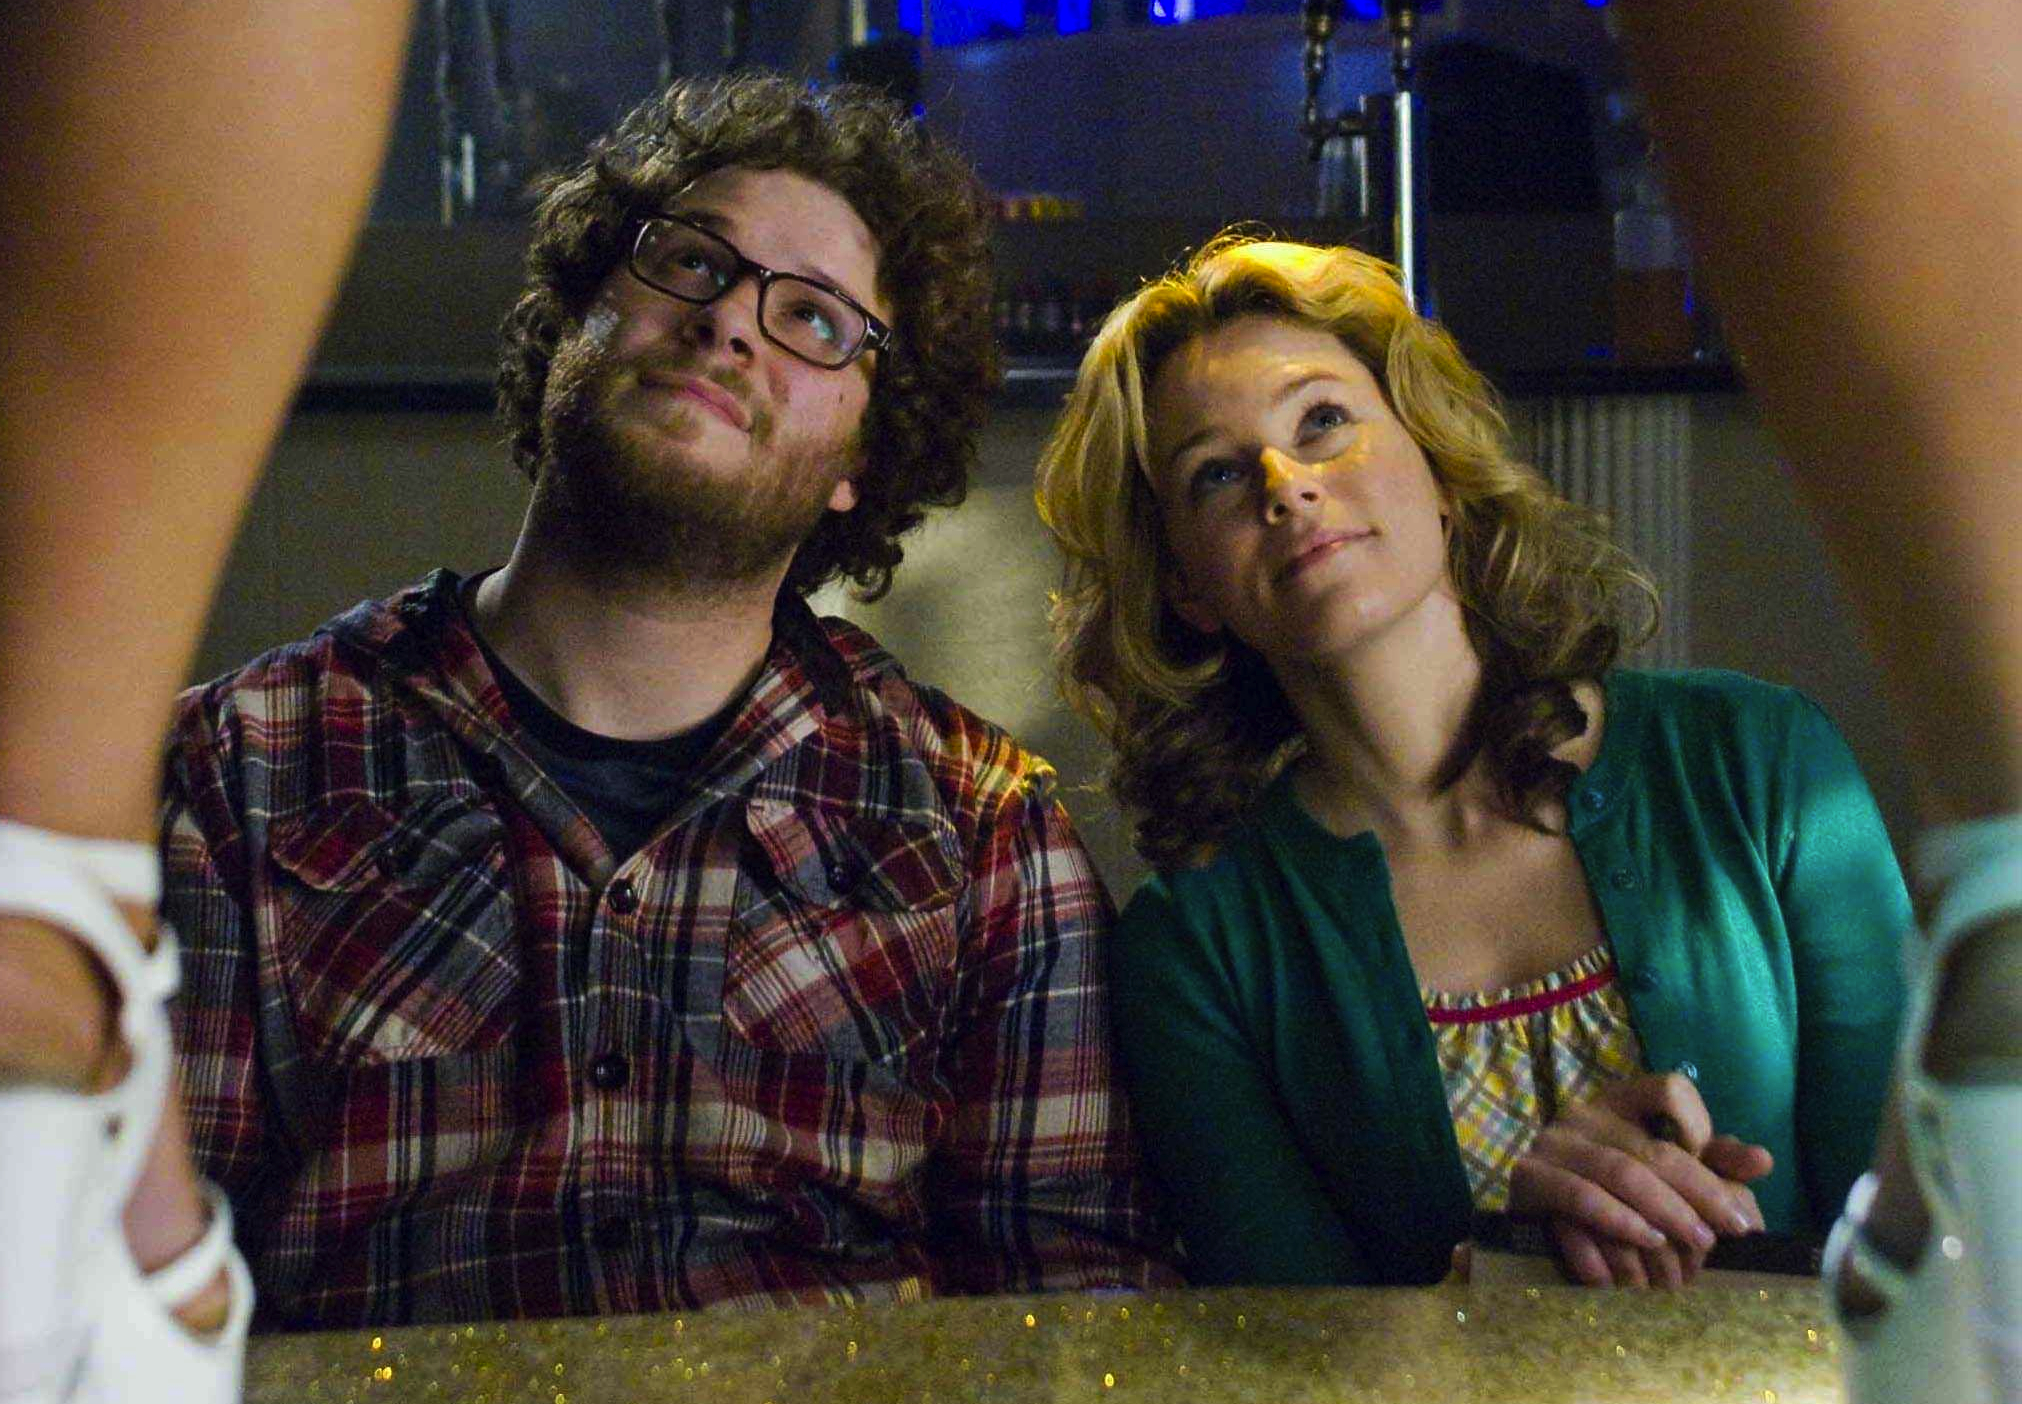 Seth Rogen and Elizabeth Banks star in Kevin Smith's ZACK & MIRI MAKE A PORNO.